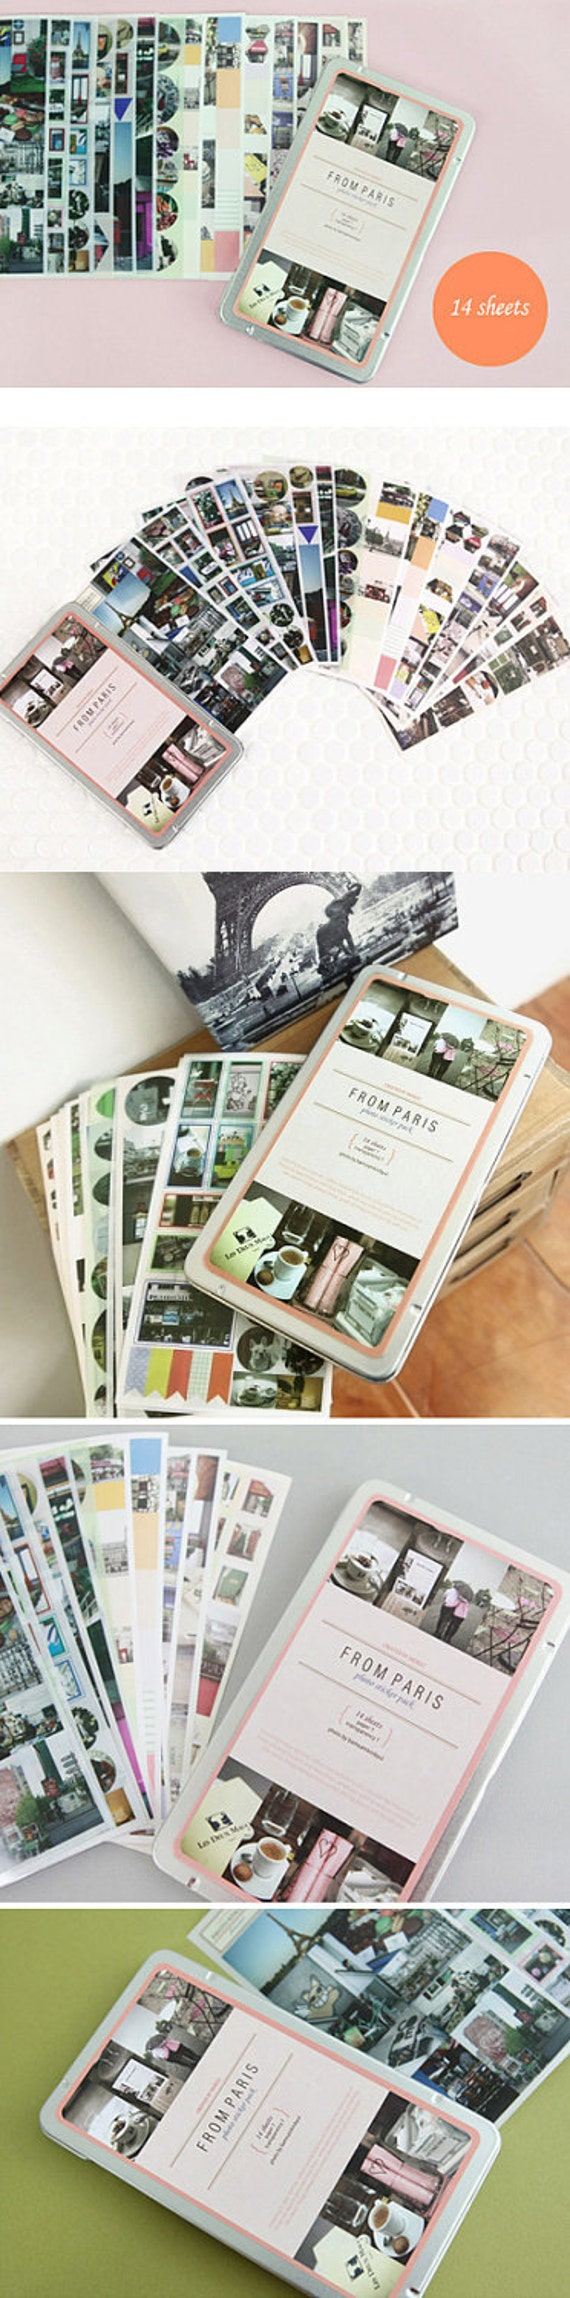 Photo Stickers Tin Case Pack from PARIS (14 sheets)